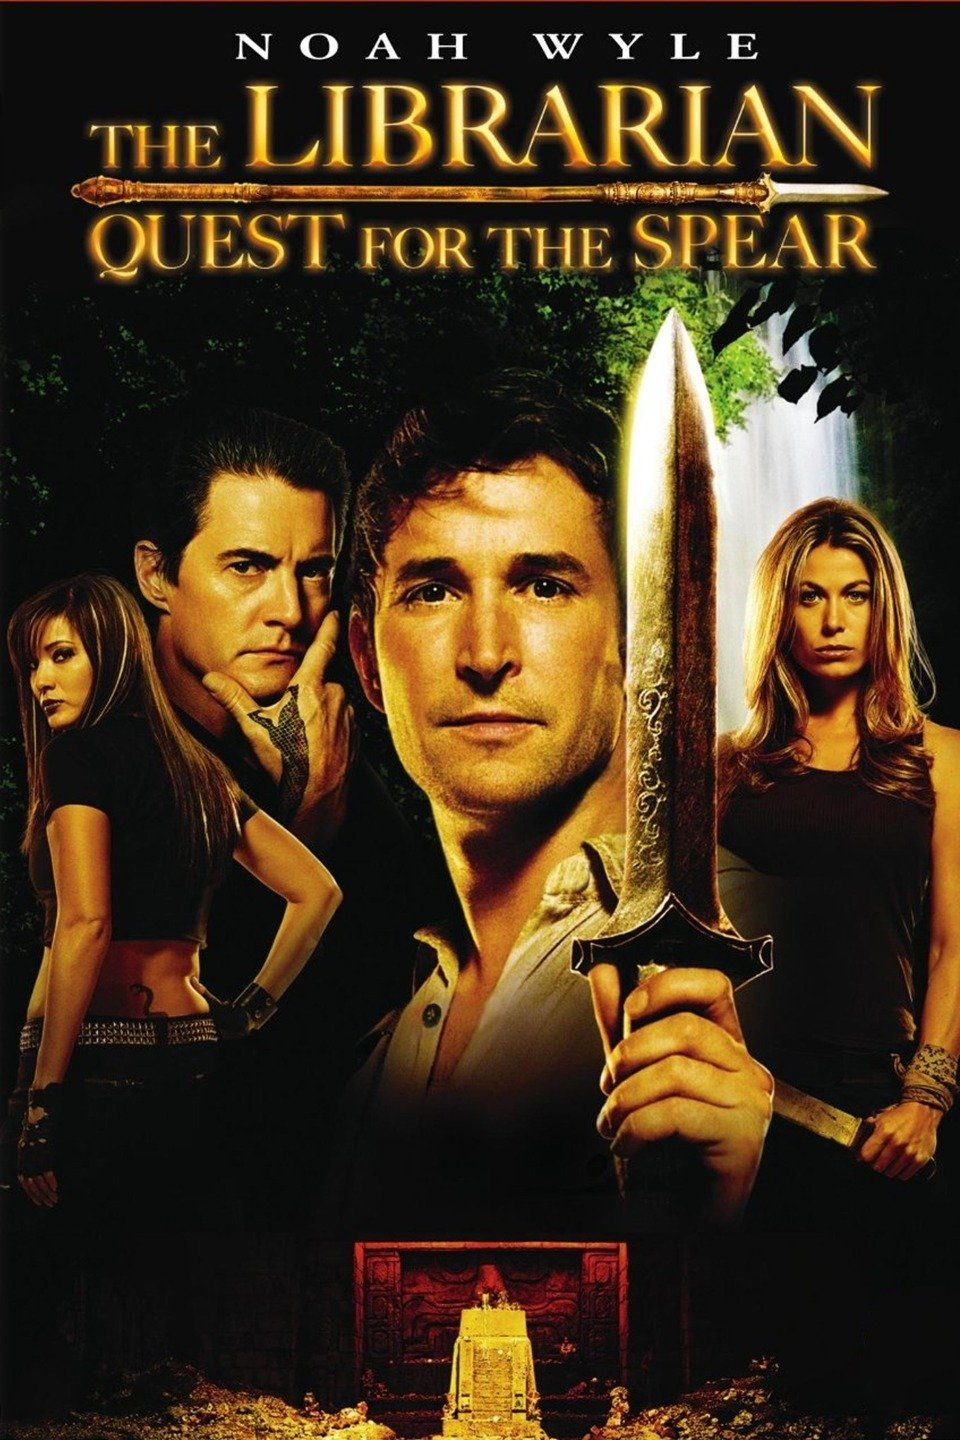 The Librarian: Quest for the Spear-The Librarian: Quest for the Spear